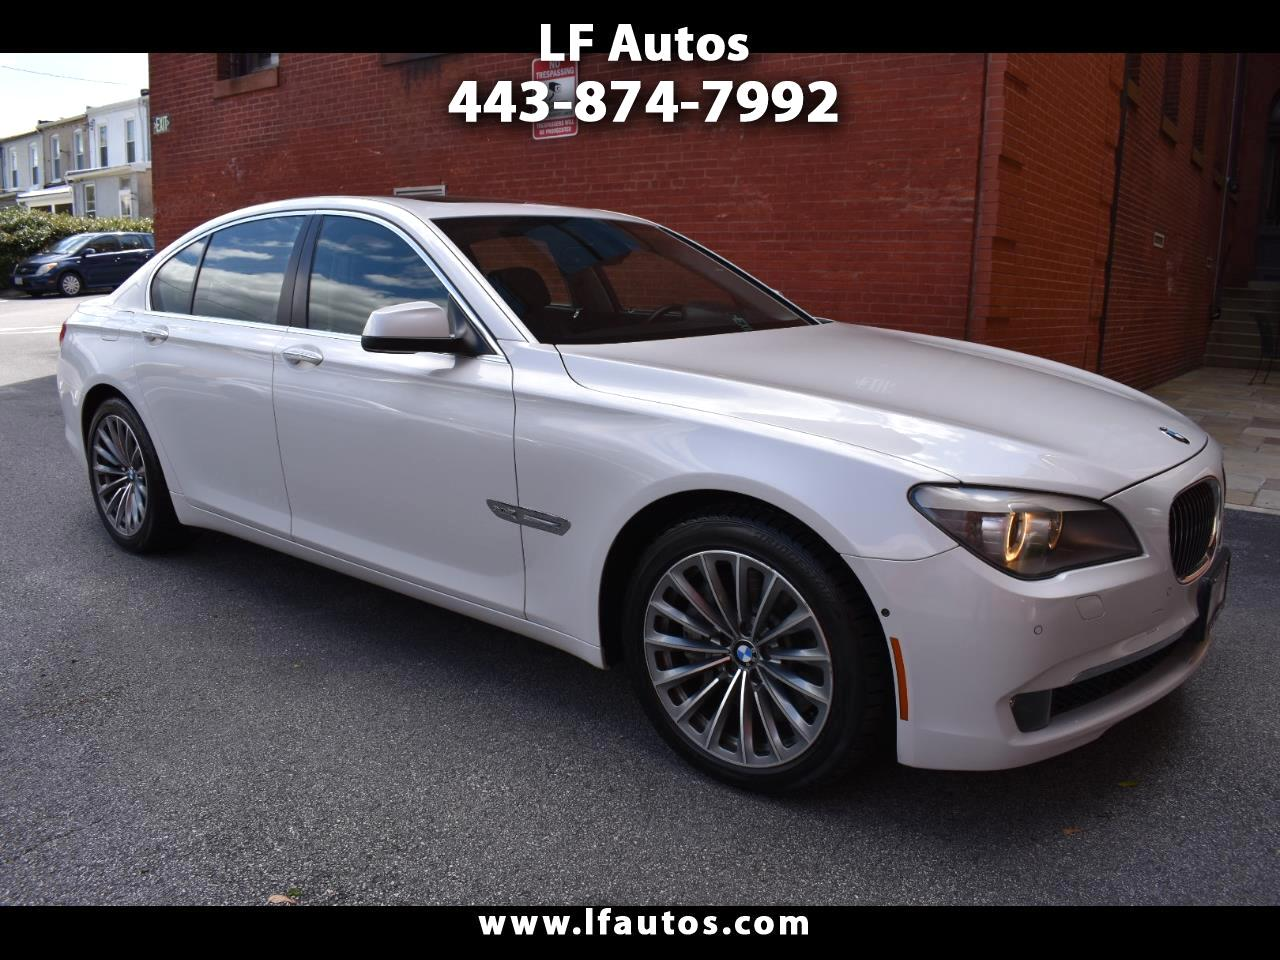 BMW 7 Series 4dr Sdn 750i xDrive AWD 2012